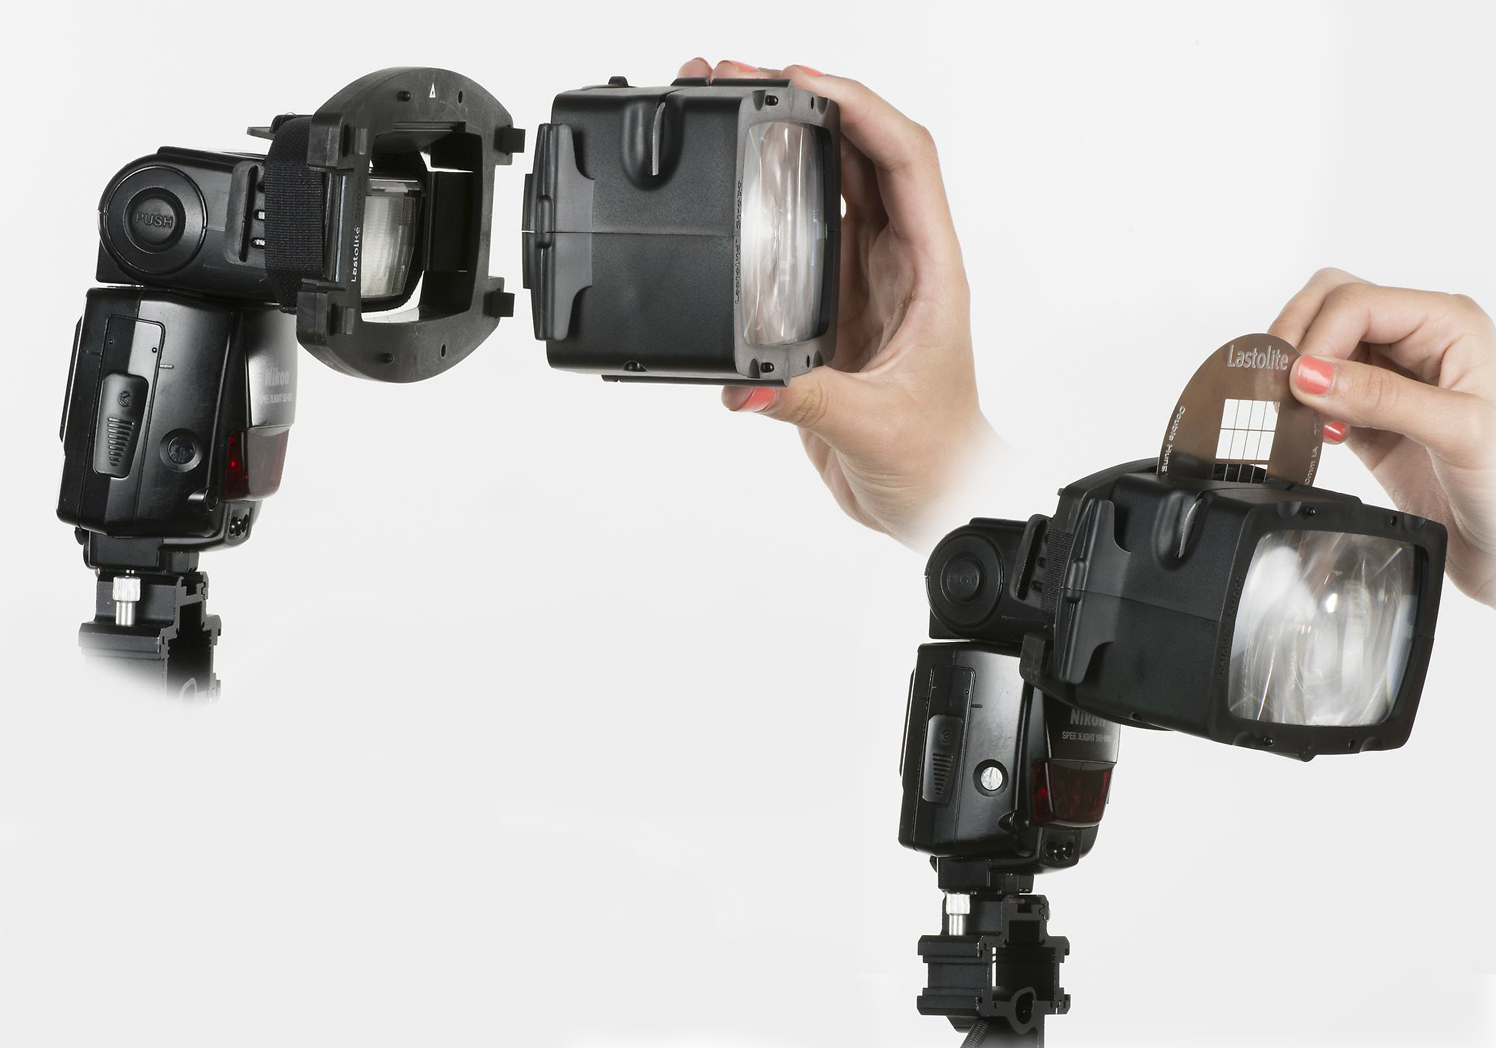 strobo_gobo Lastolite launches new studio products News and Reviews